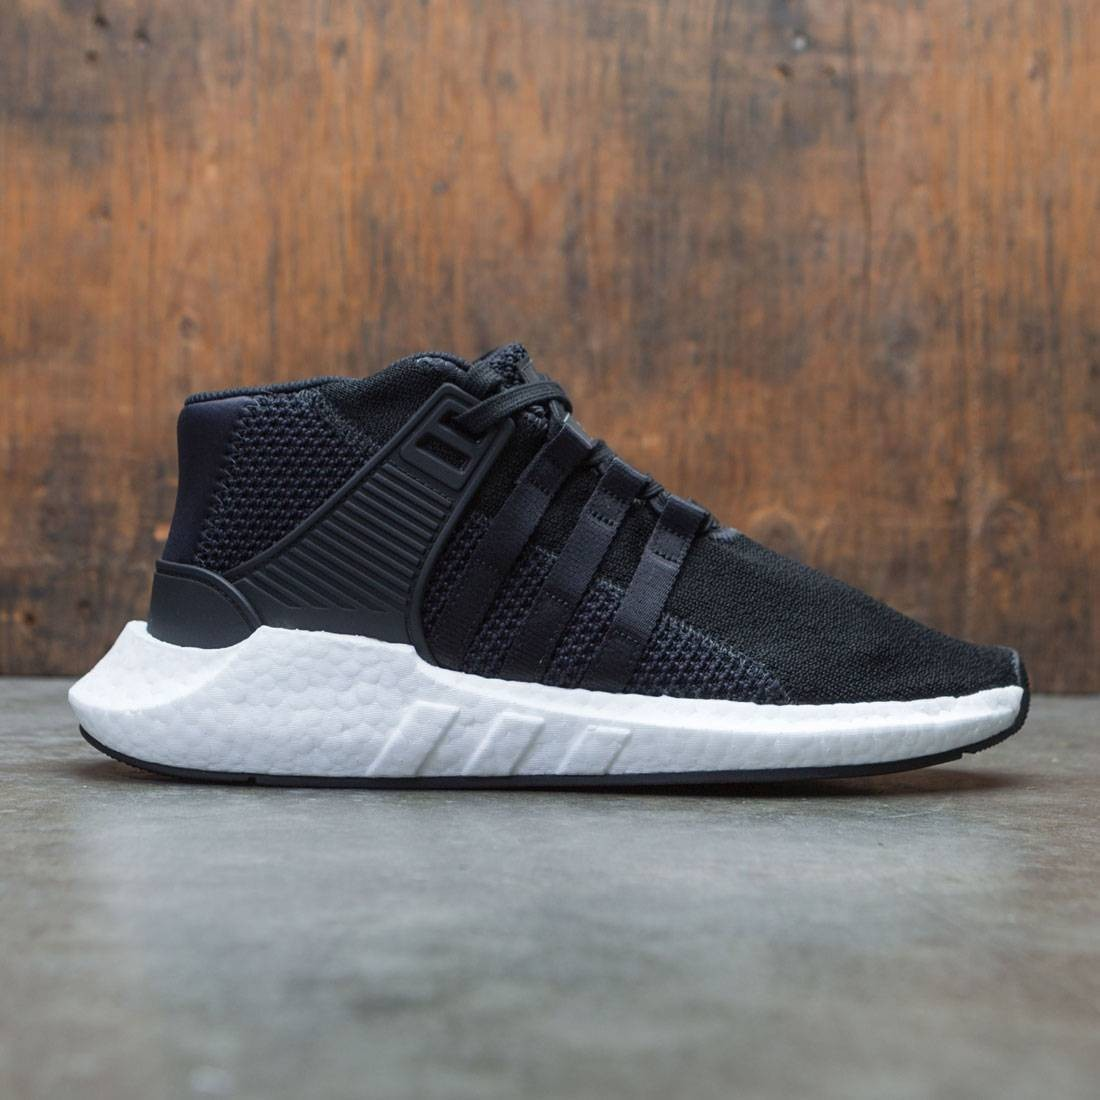 the best attitude 0bdd7 b2b57 adidas x mastermind world men eqt support 9317 mid black core black  footwear white